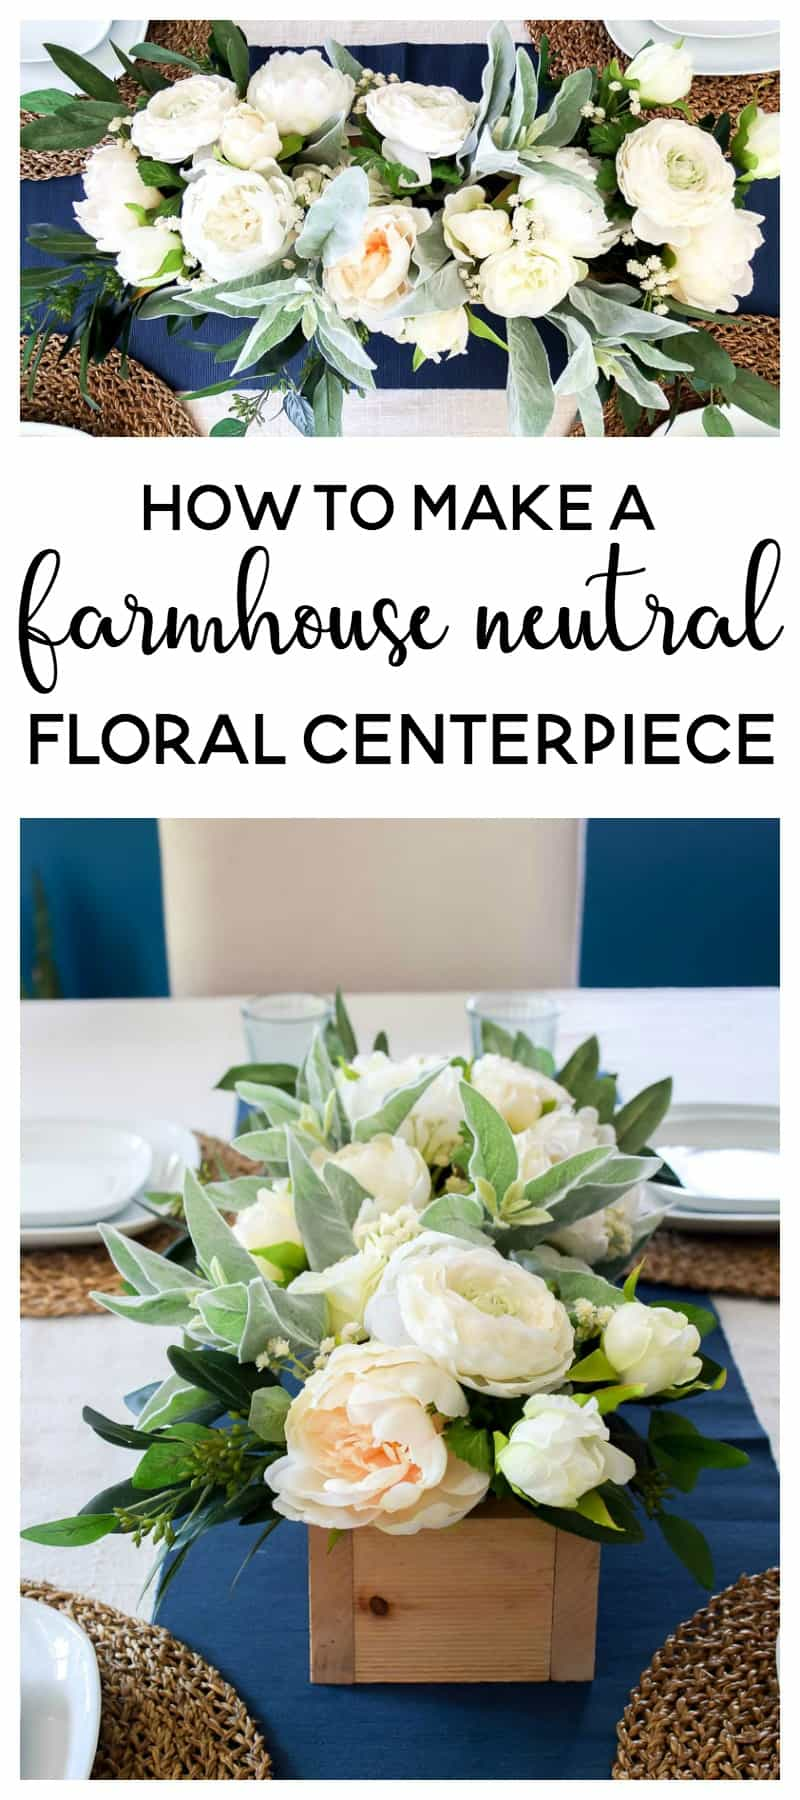 Farmhouse Neutral Floral Centerpiece DIY | See how I made a simple wooden box to use as a centerpiece and filled it to the brim with lovely green and neutral flowers. It's the perfect farmhouse neutral floral centerpiece that can be used in all seasons!